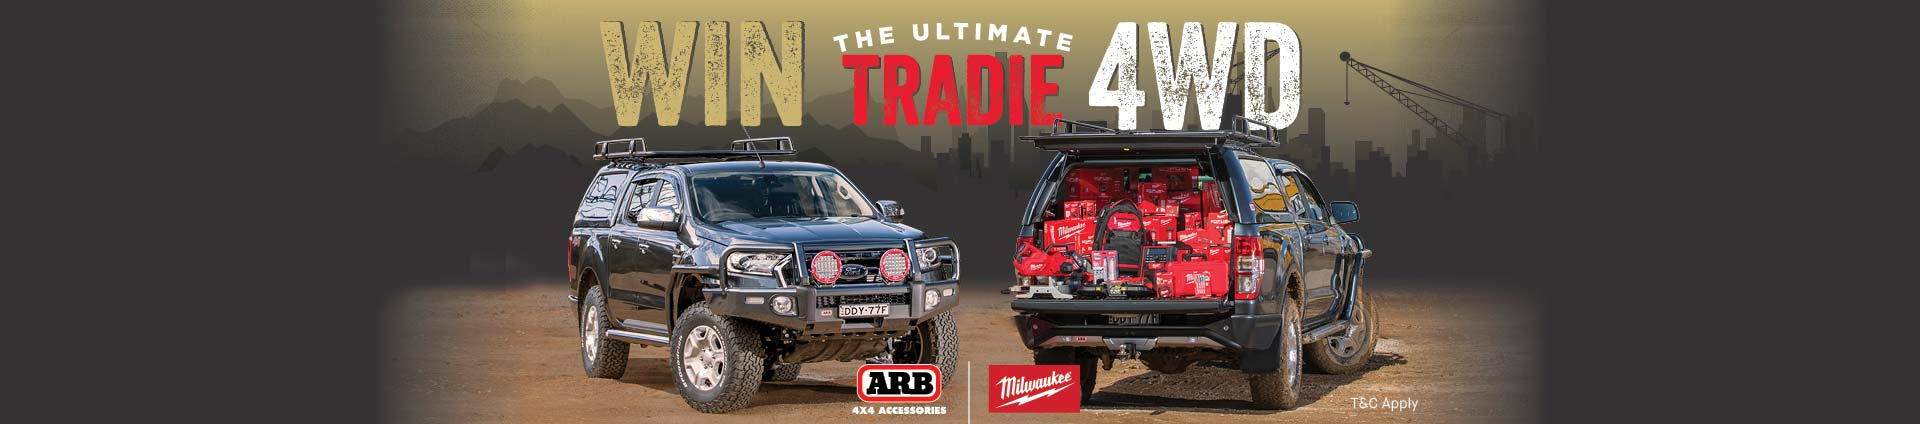 Win the Ultimate Tradie 4WD with Milwaukee Tools - ARB Maroochydore